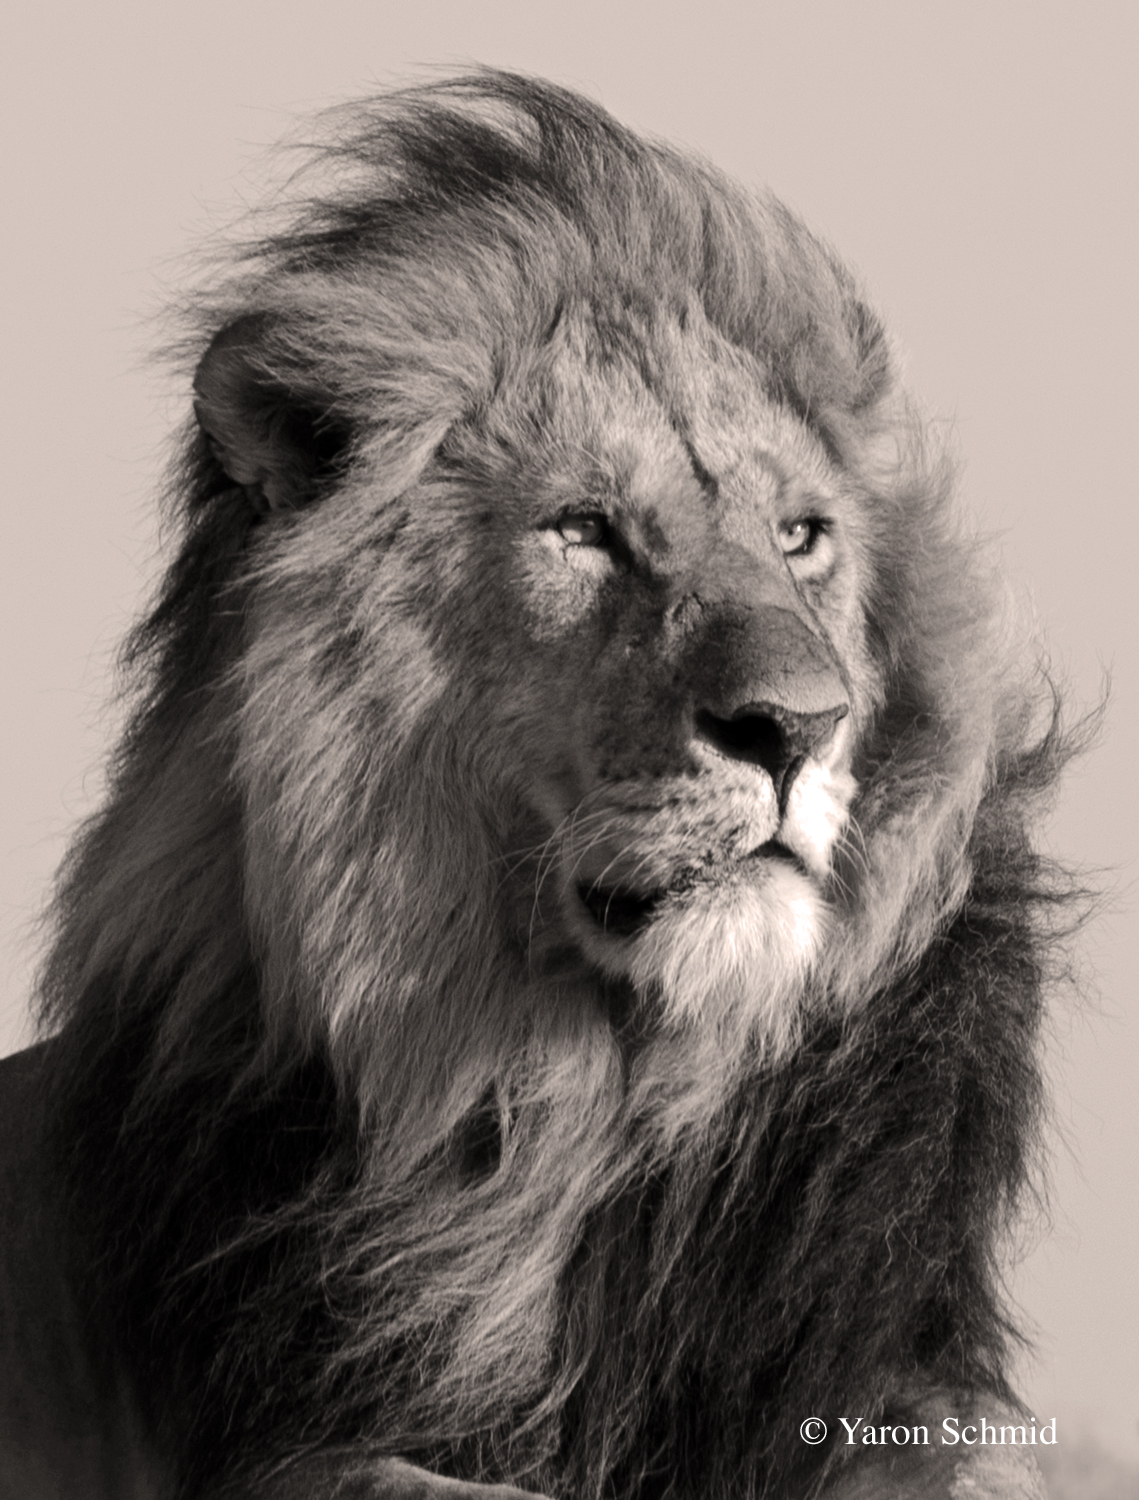 The Lion King in Black and White